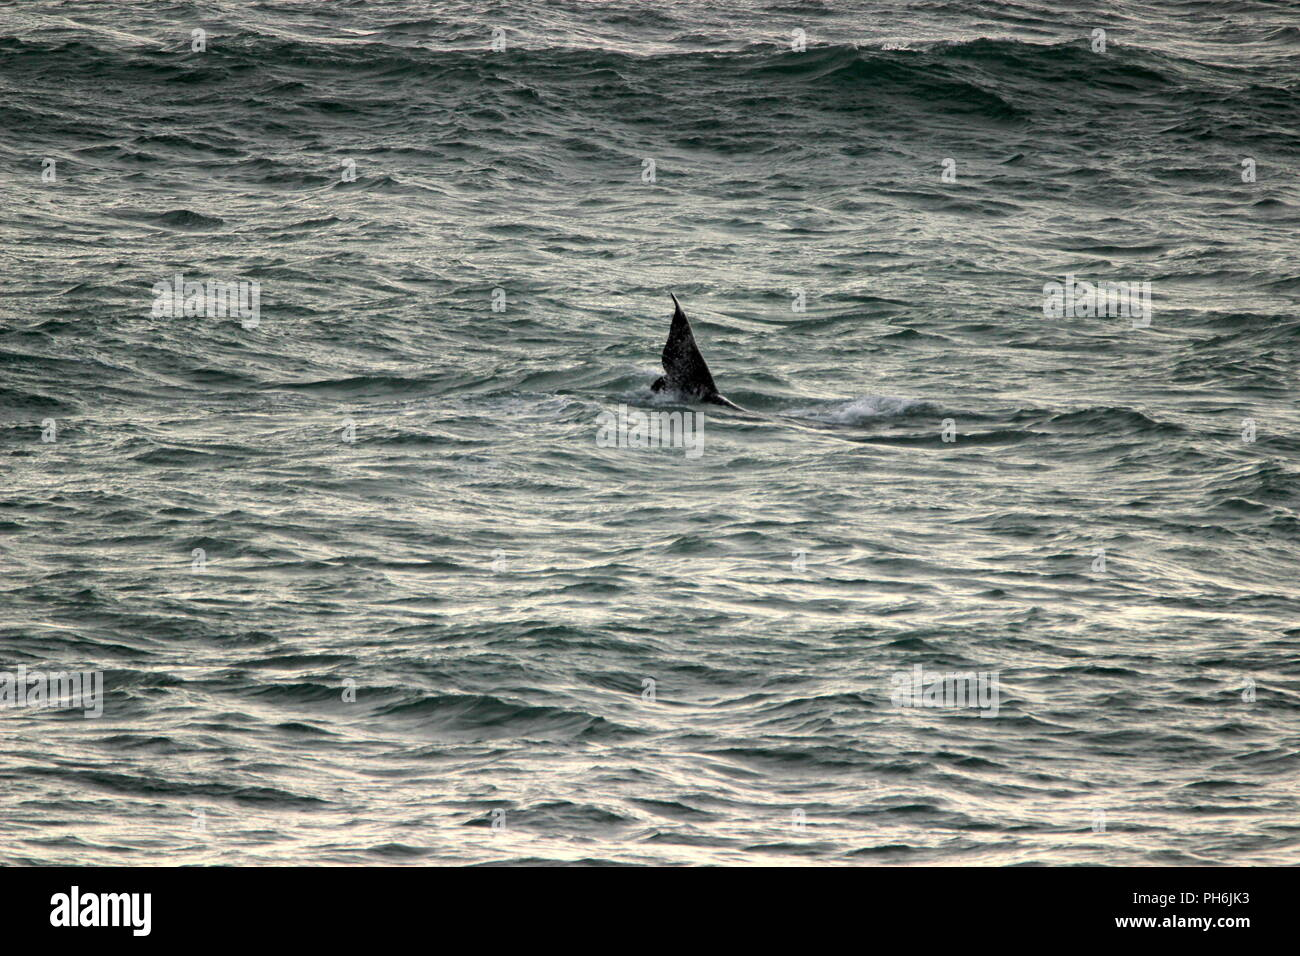 Southern right whale - Stock Image